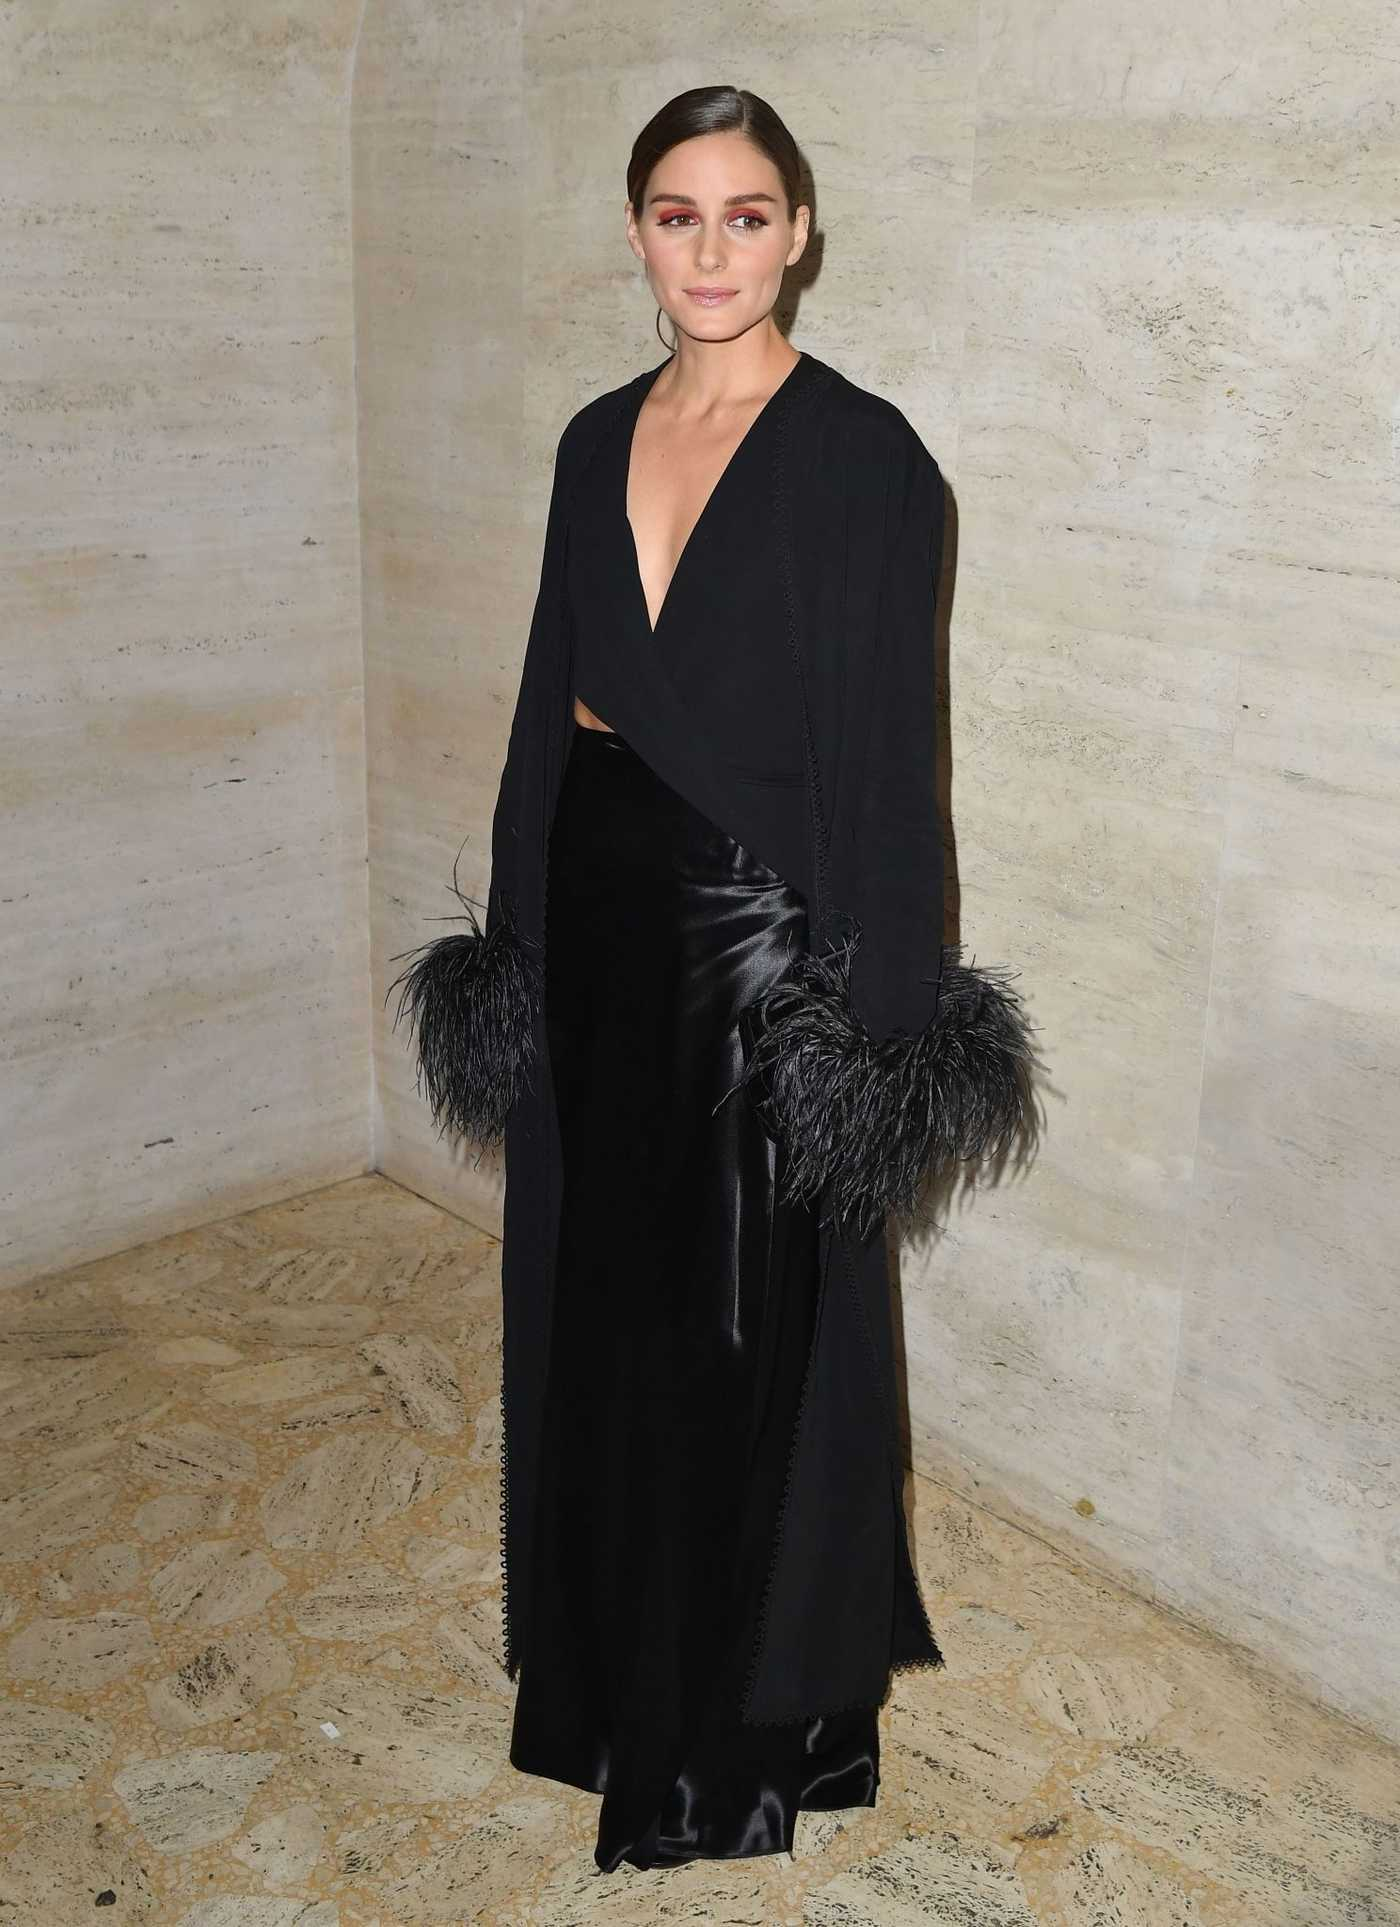 Olivia Palermo Attends The American Ballet Theatre 2018 Fall Gala in New York City 10/17/2018